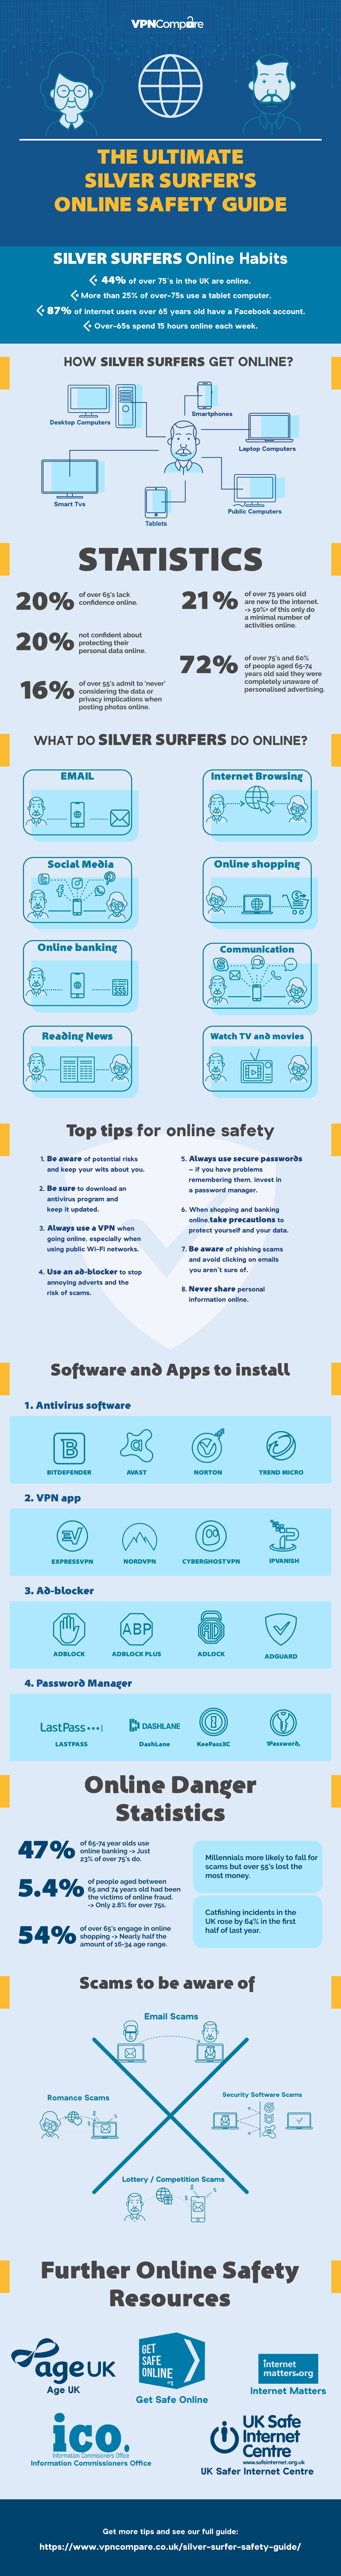 Infographic on Silver Surfer online safety